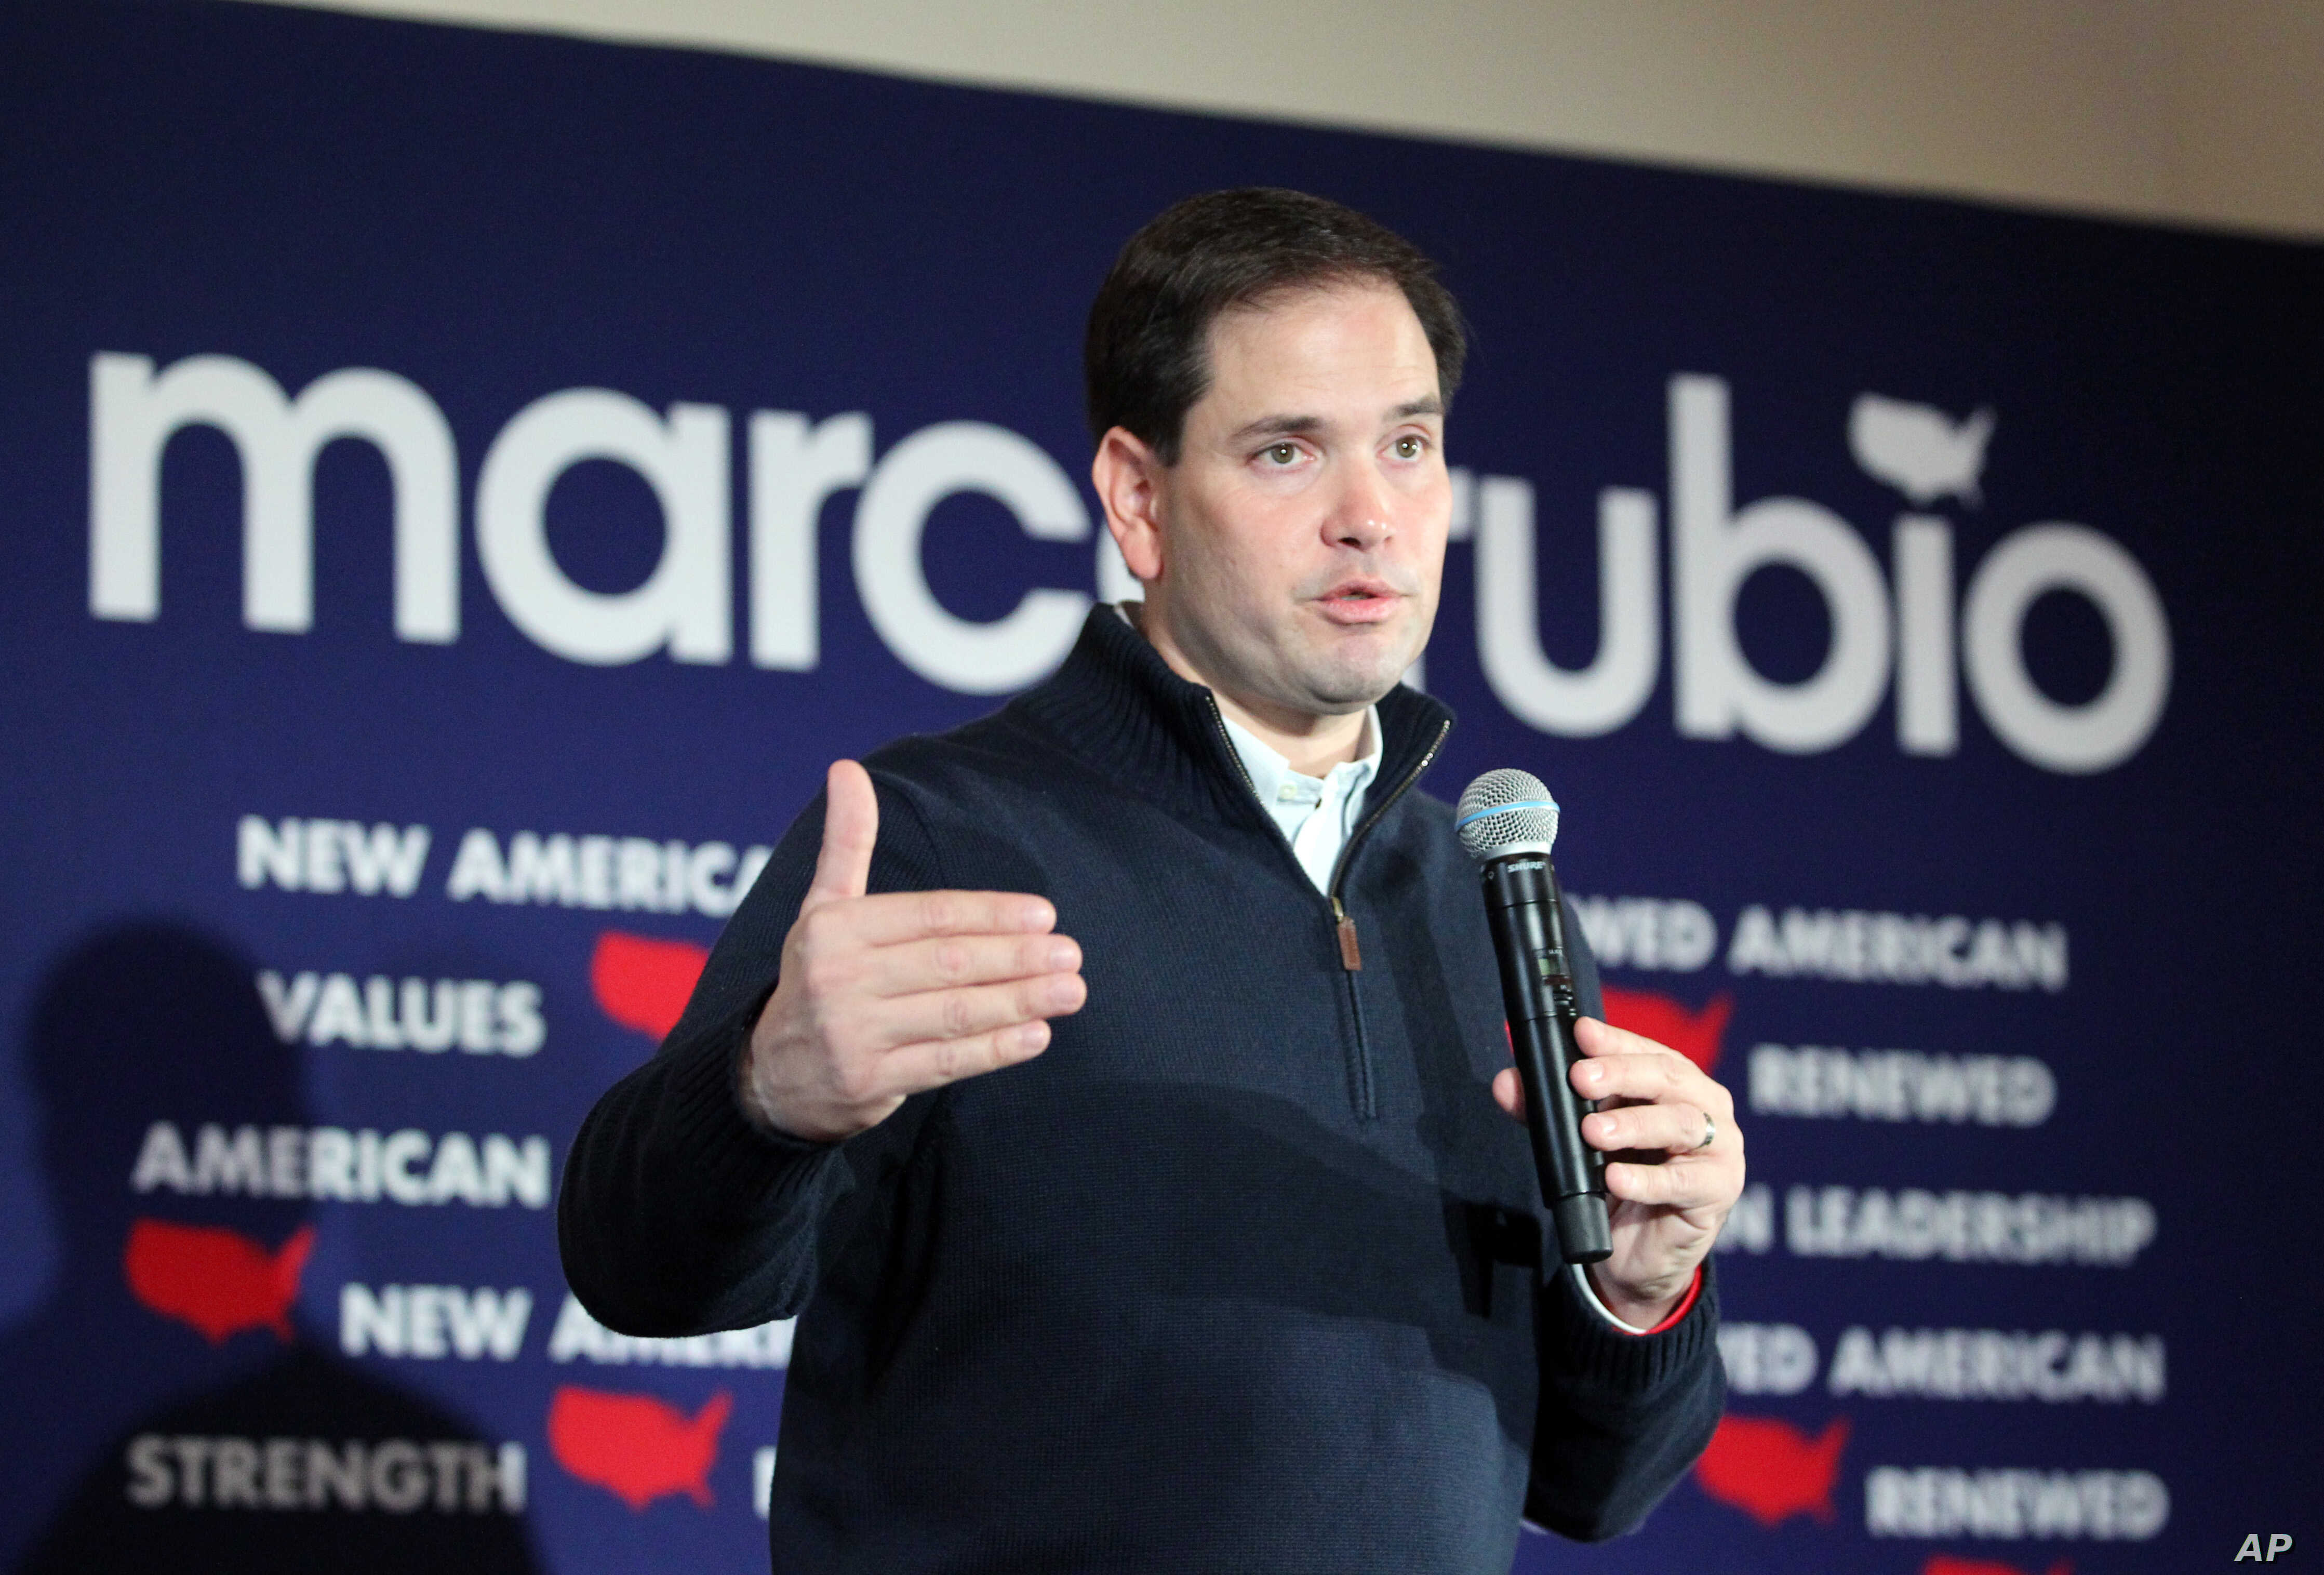 Republican presidential candidate Sen. Marco Rubio, R-Fla., speaks during a campaign stop in Rochester, New Hampshire, Dec. 21, 2015.